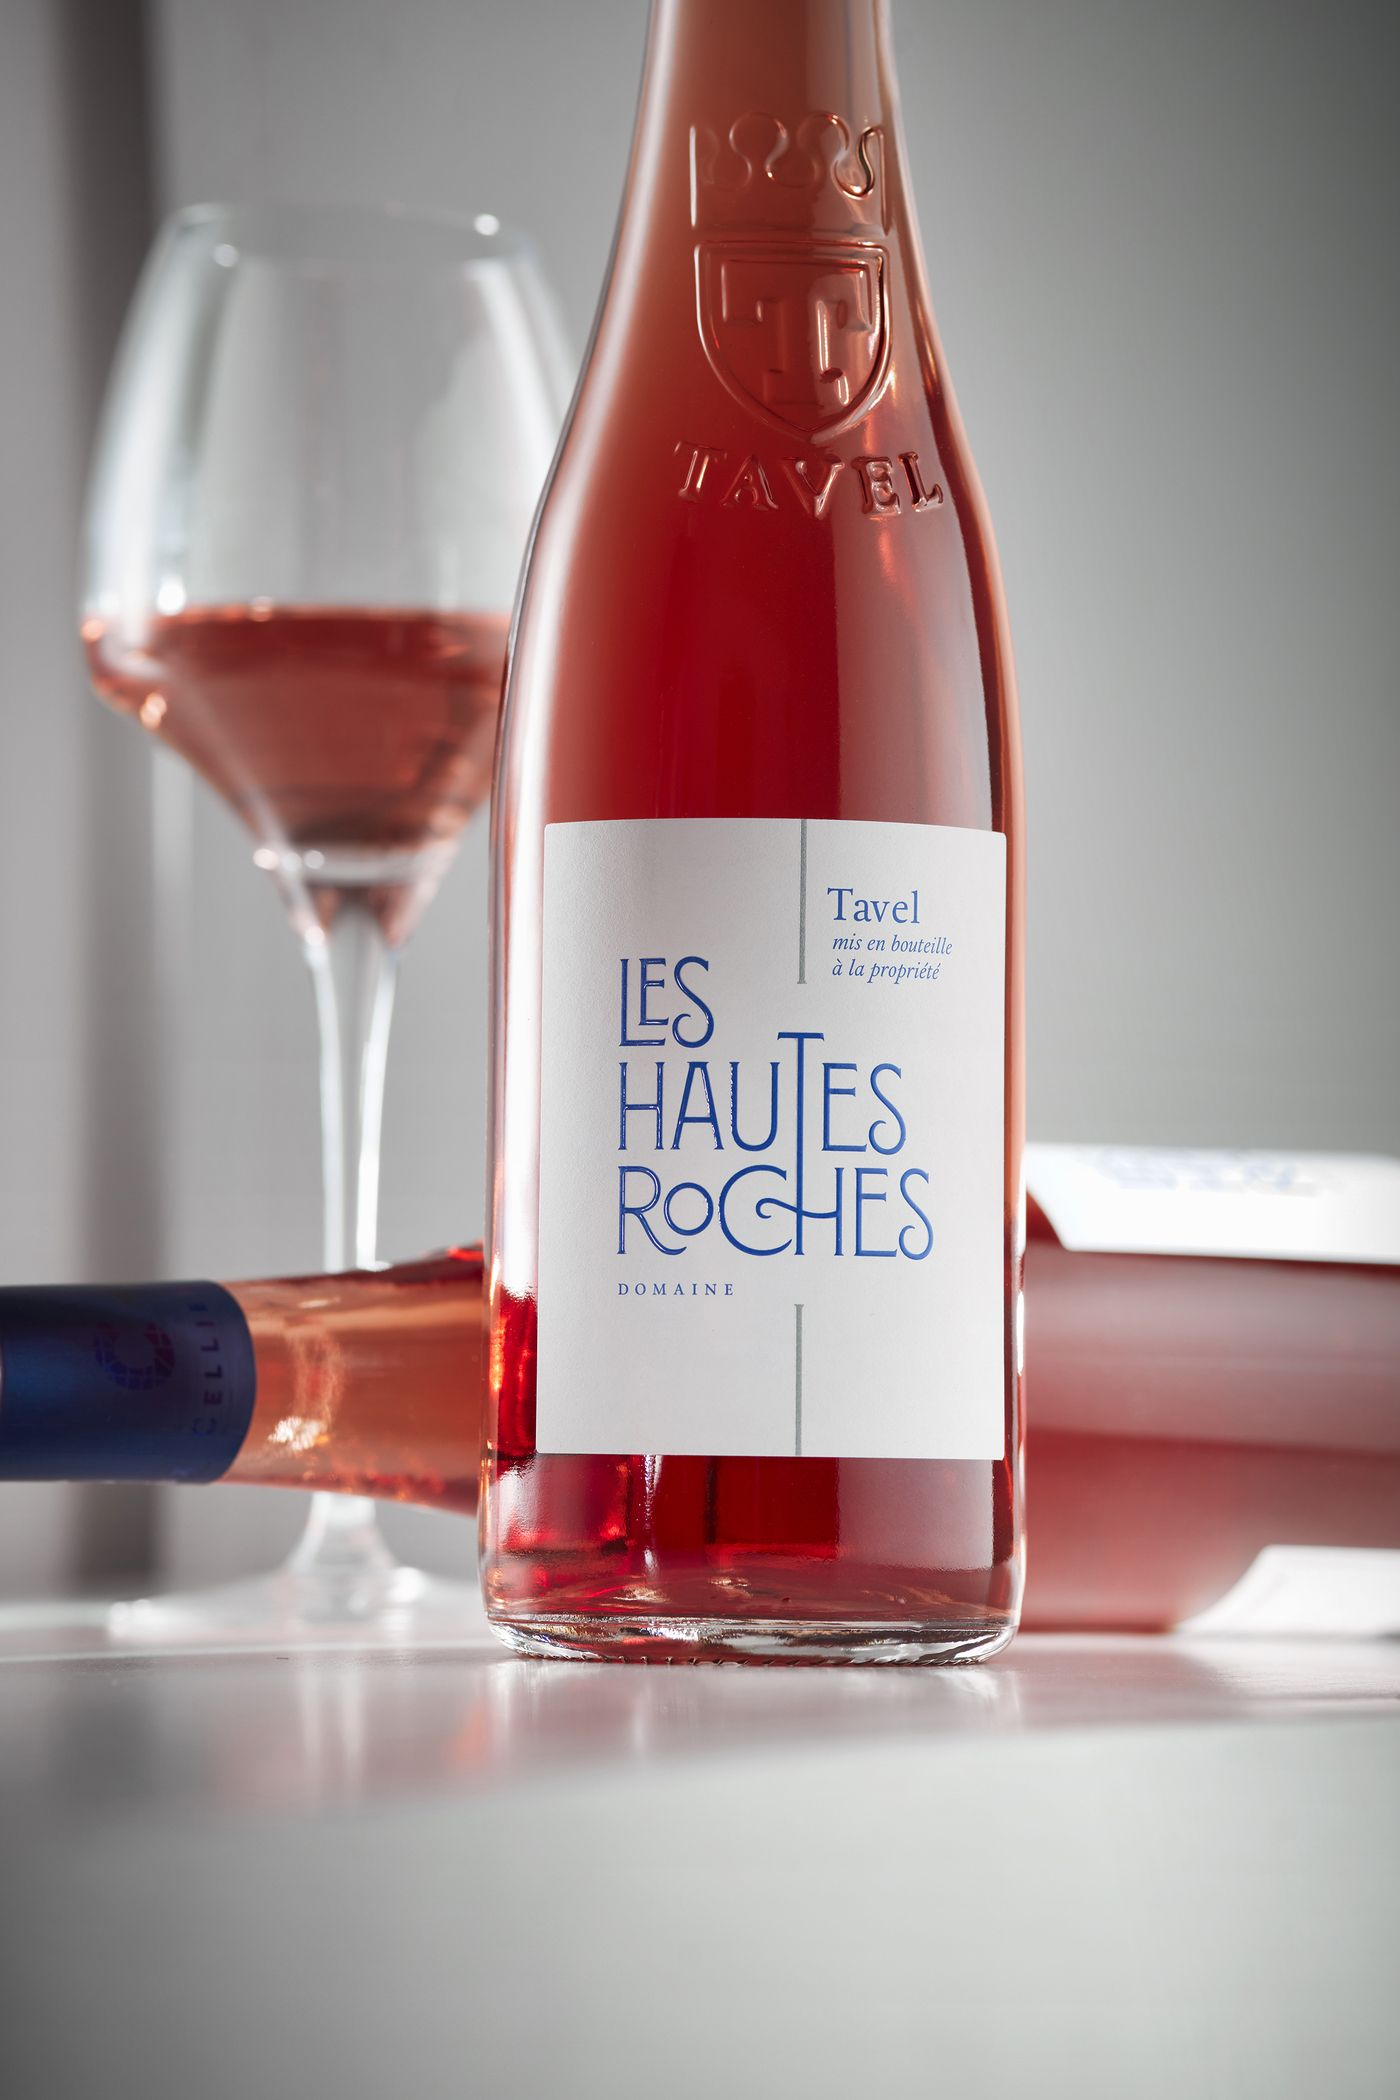 Les Hautes Roches Wine Label 1 Wine Bottle Label Design Wine Bottle Packaging Wine Bottle Design